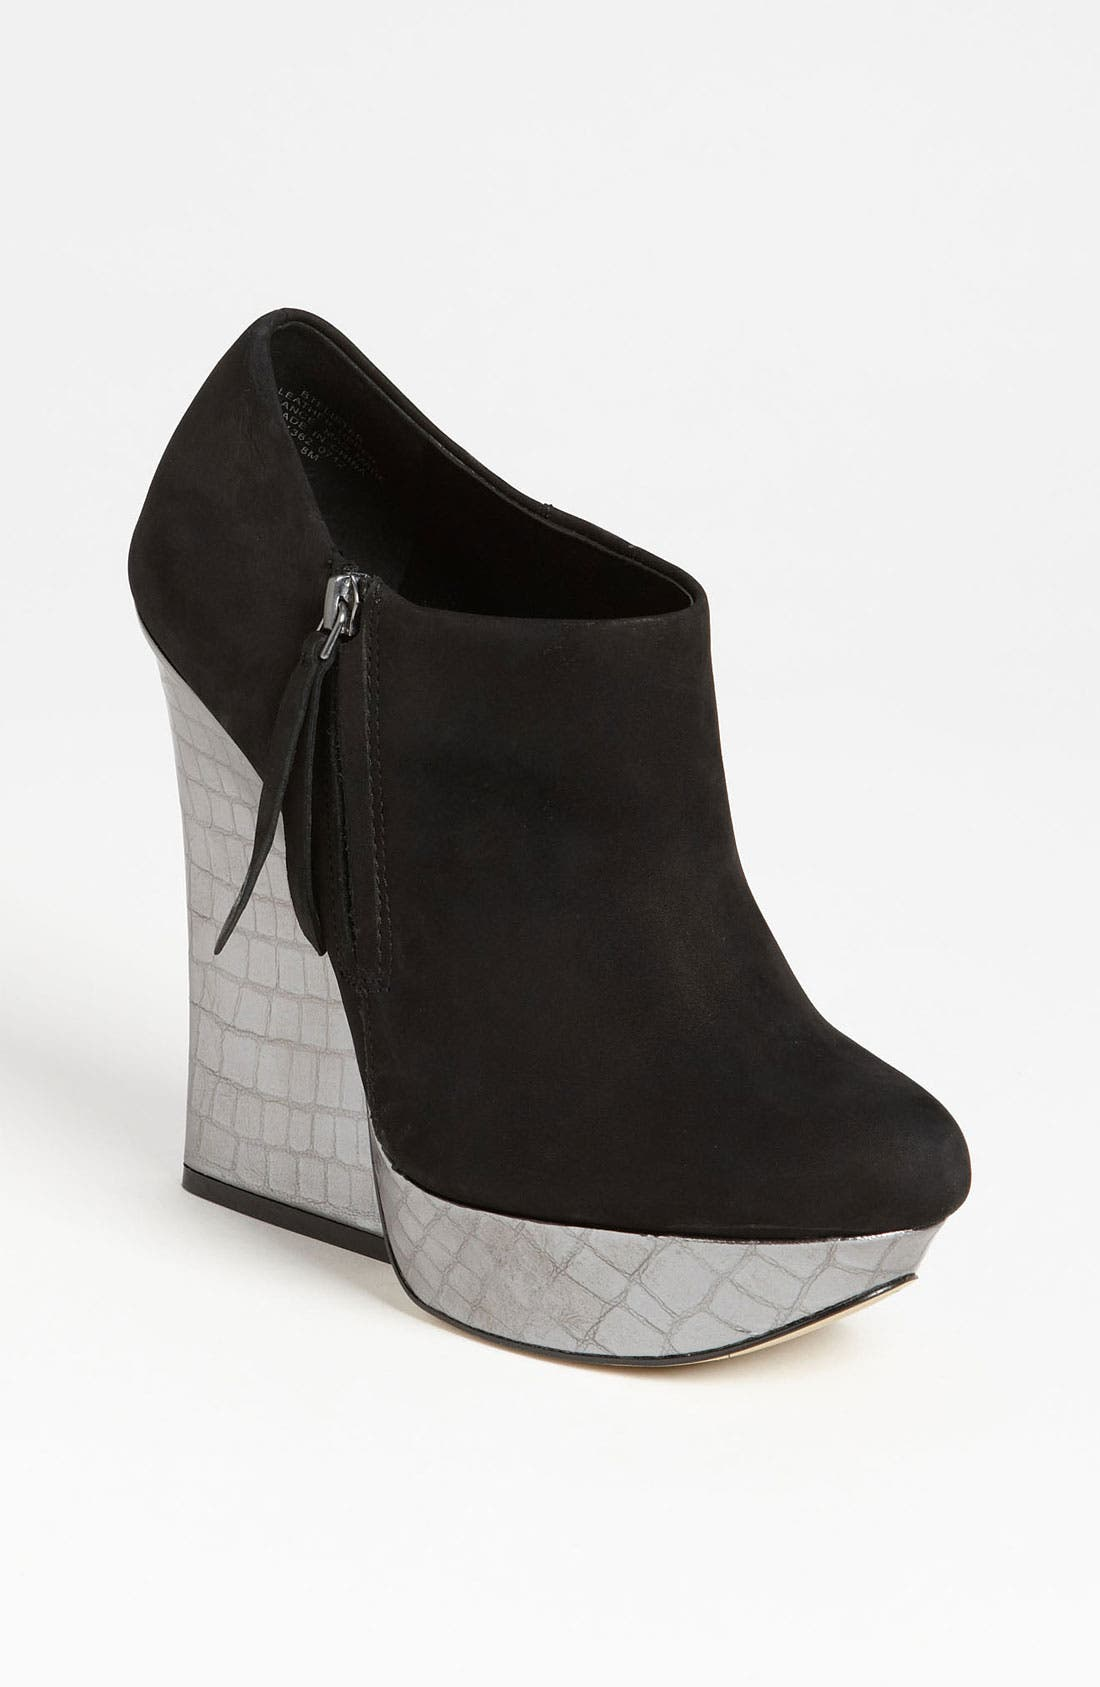 Alternate Image 1 Selected - Boutique 9 'Elister' Bootie